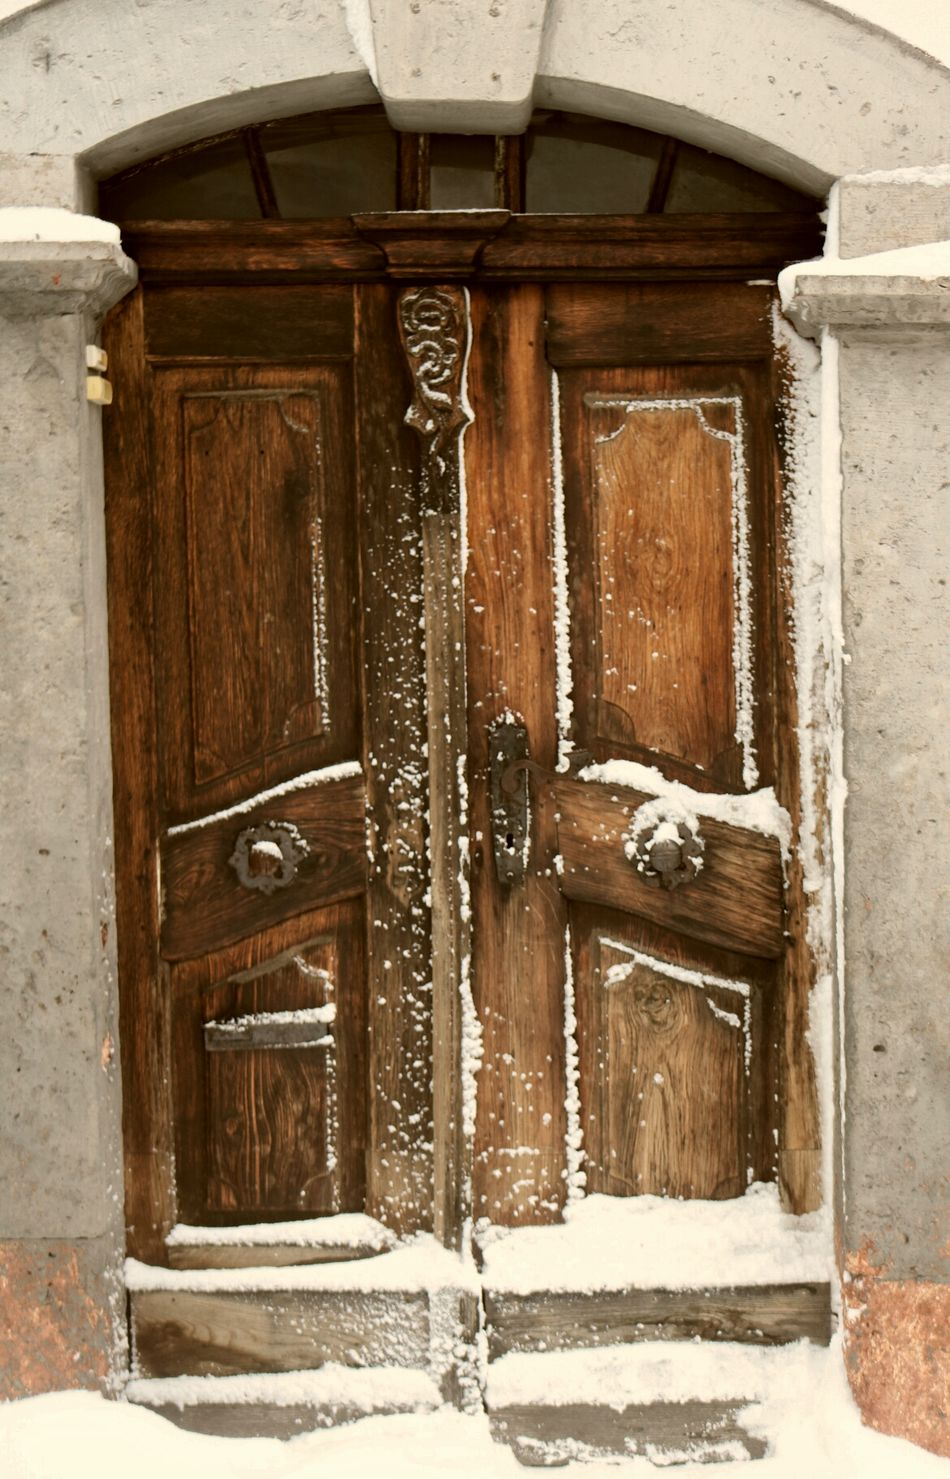 No Entry For Winter House Outdoors Closed Built Structure Door No People Day Wood - Material Front Door Close-up Architecture Wintertime Winter Snow The End Of Winter ❄❄❄